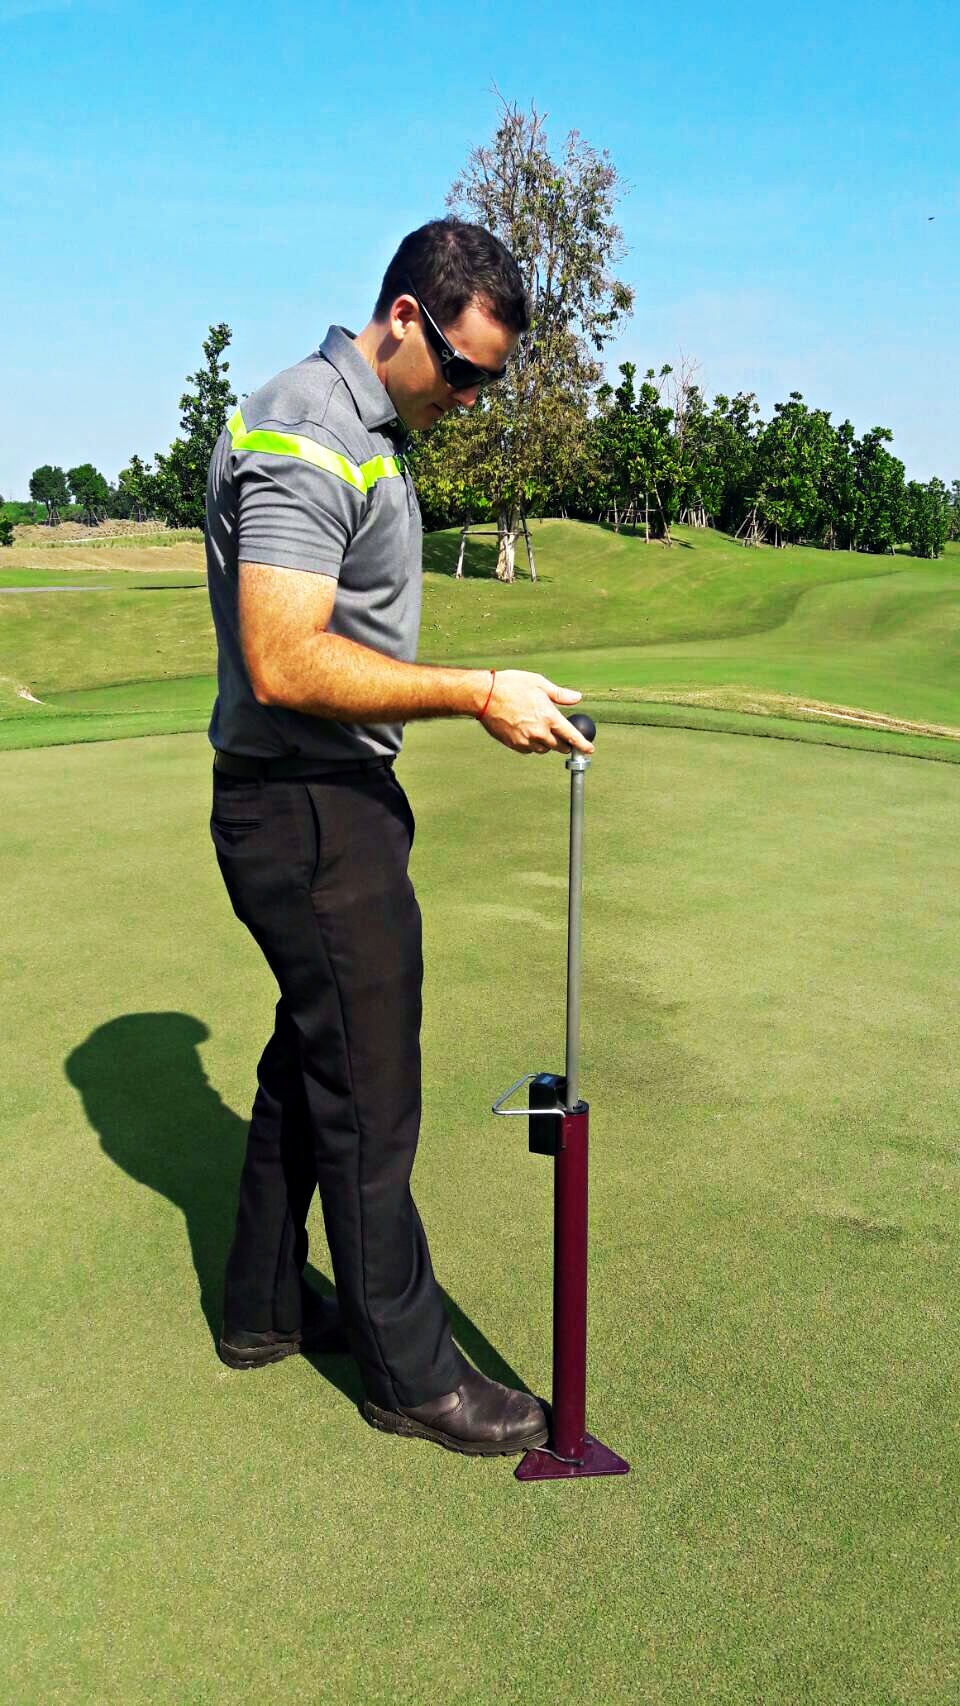 Using devices like the Trufirm (pictured above) or the Clegg Hammer, the turf manager can accurately measure the firmness of their respective playing surface and track the progress over time. Maintenance programs can then be modified where necessary to achieve the desired results.